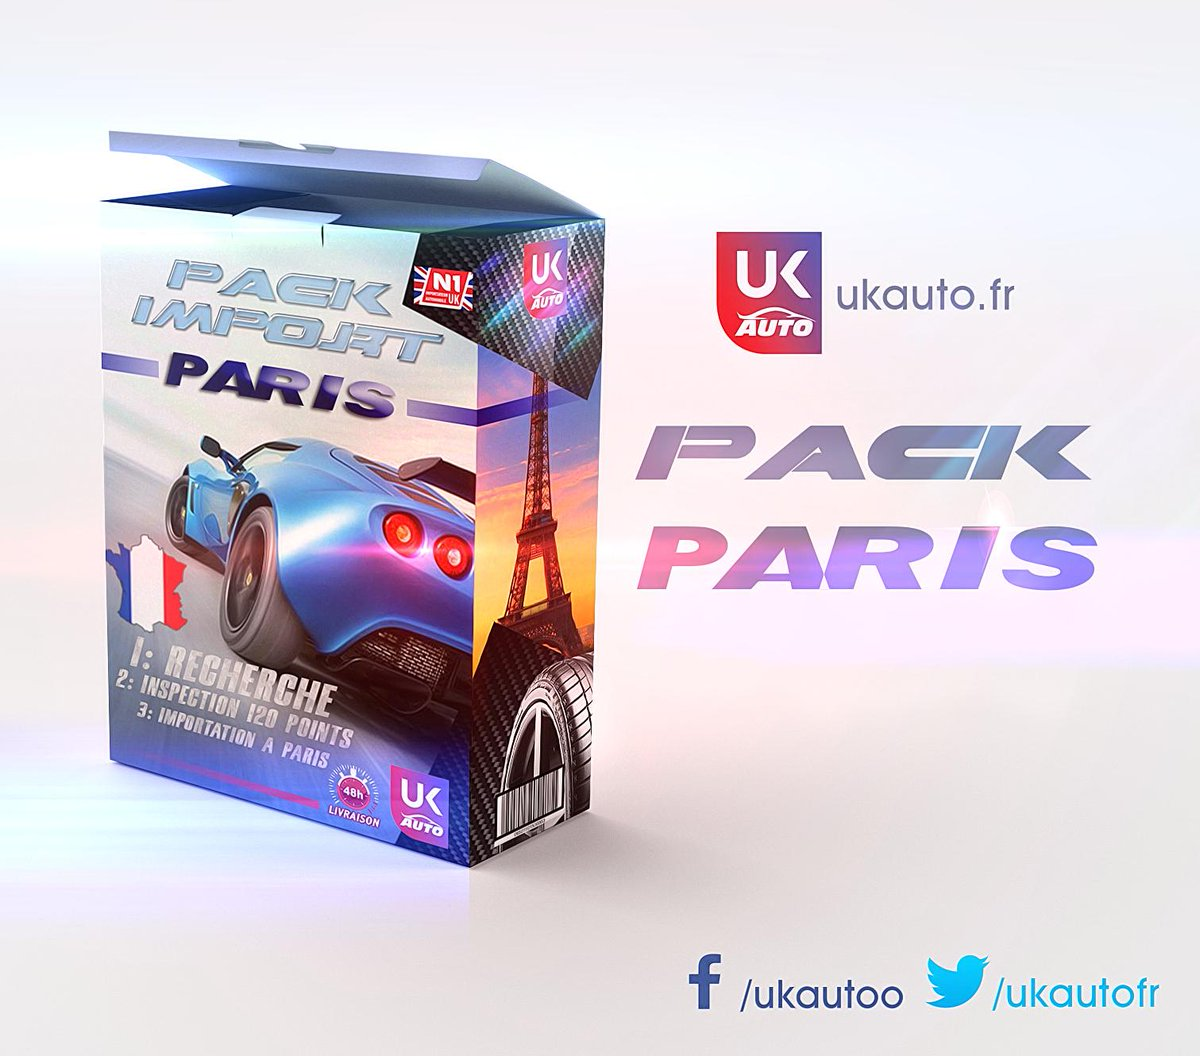 ukauto mandataire automobile angleterre importation voiture angleterre 3 - Importation Automobile depuis l'Angleterre Nos Packs